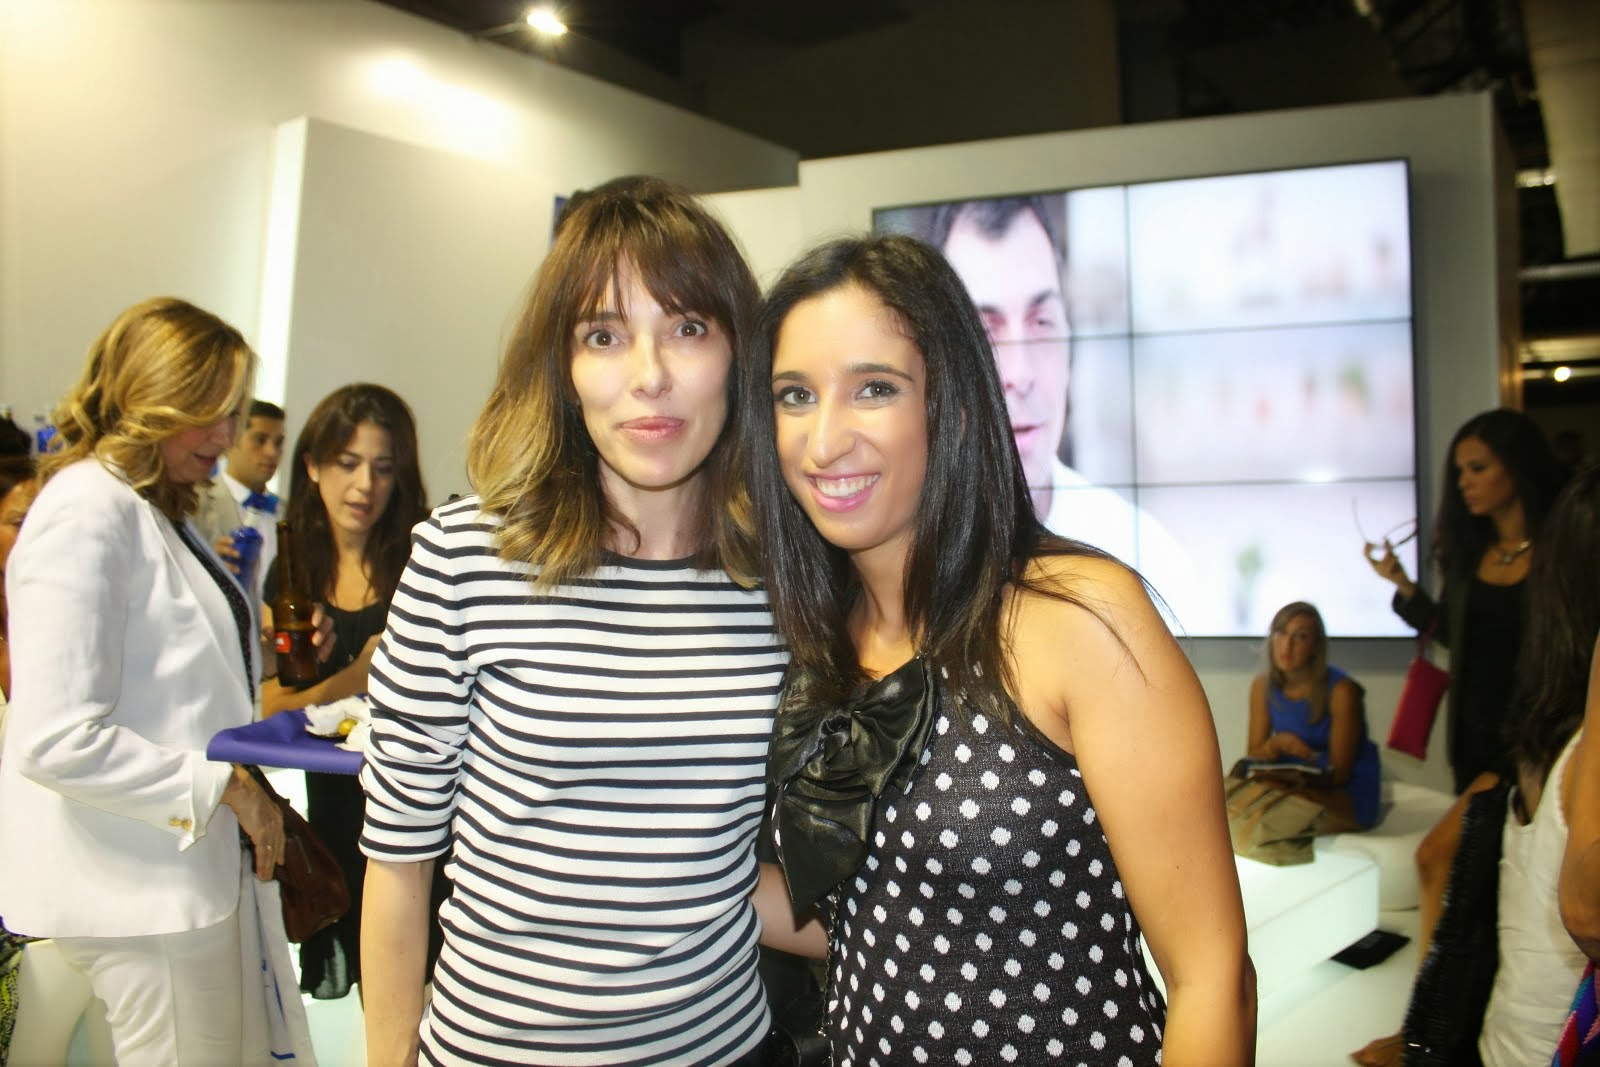 With Teresa Helbig Fashion Designer